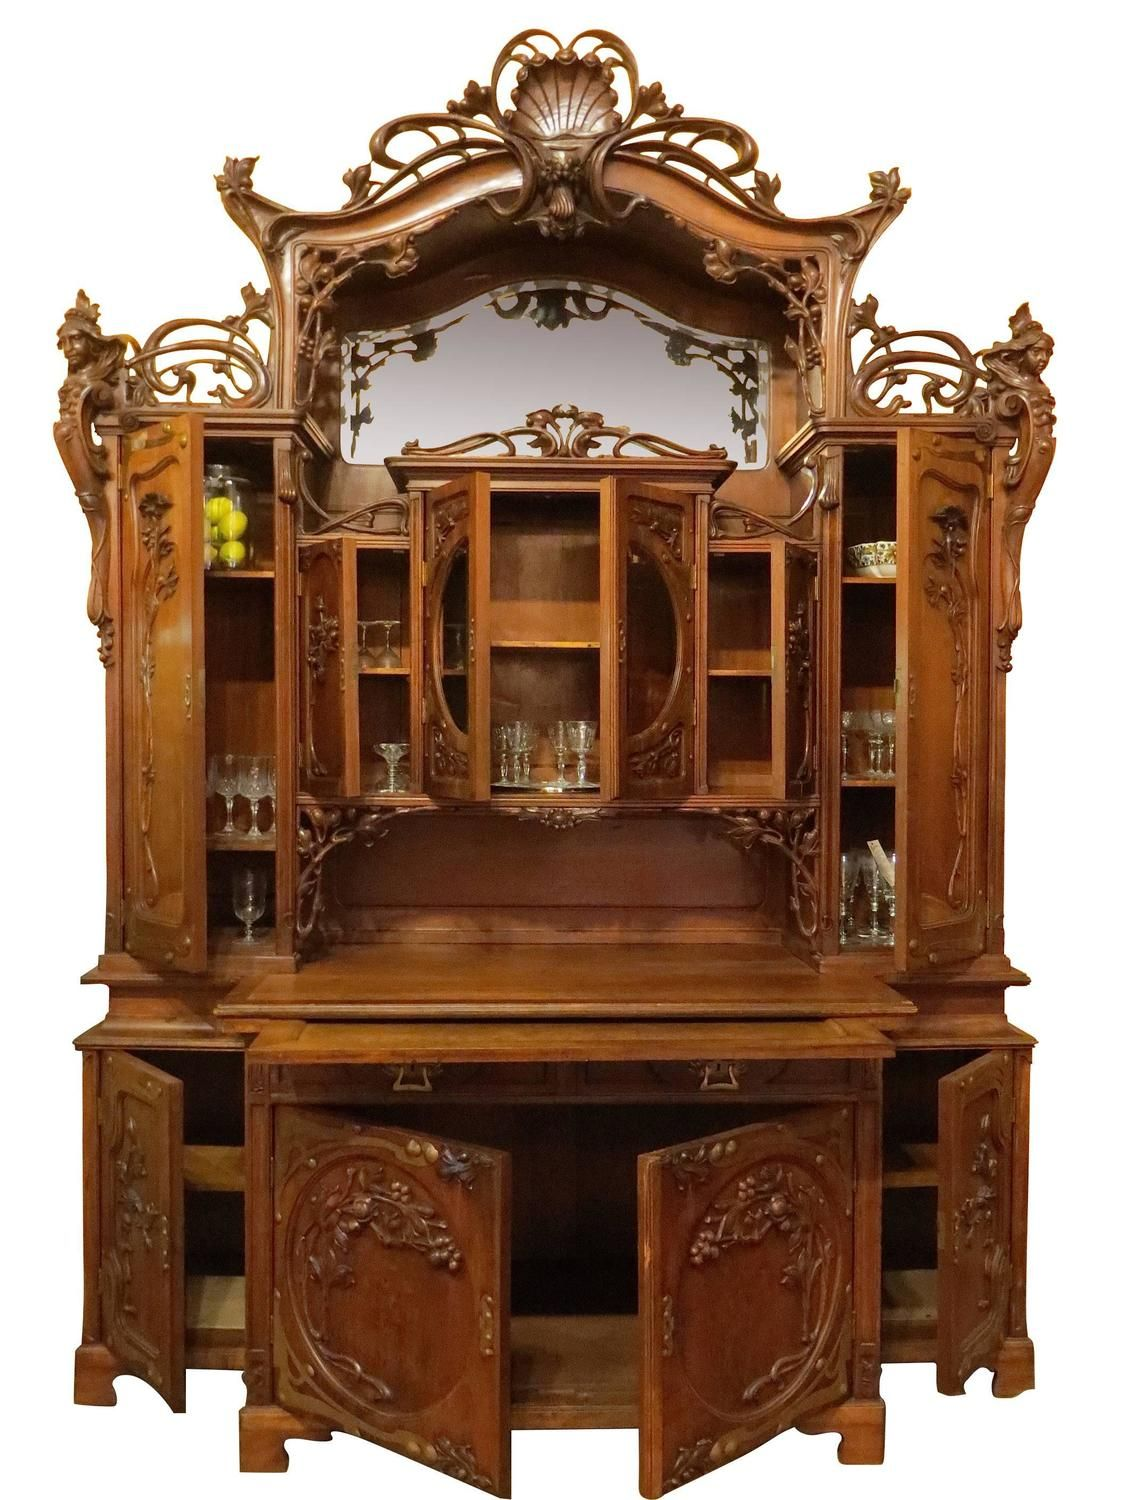 Impressive Art Nouveau Austrian Server or Back Bar | Antigüedades ...